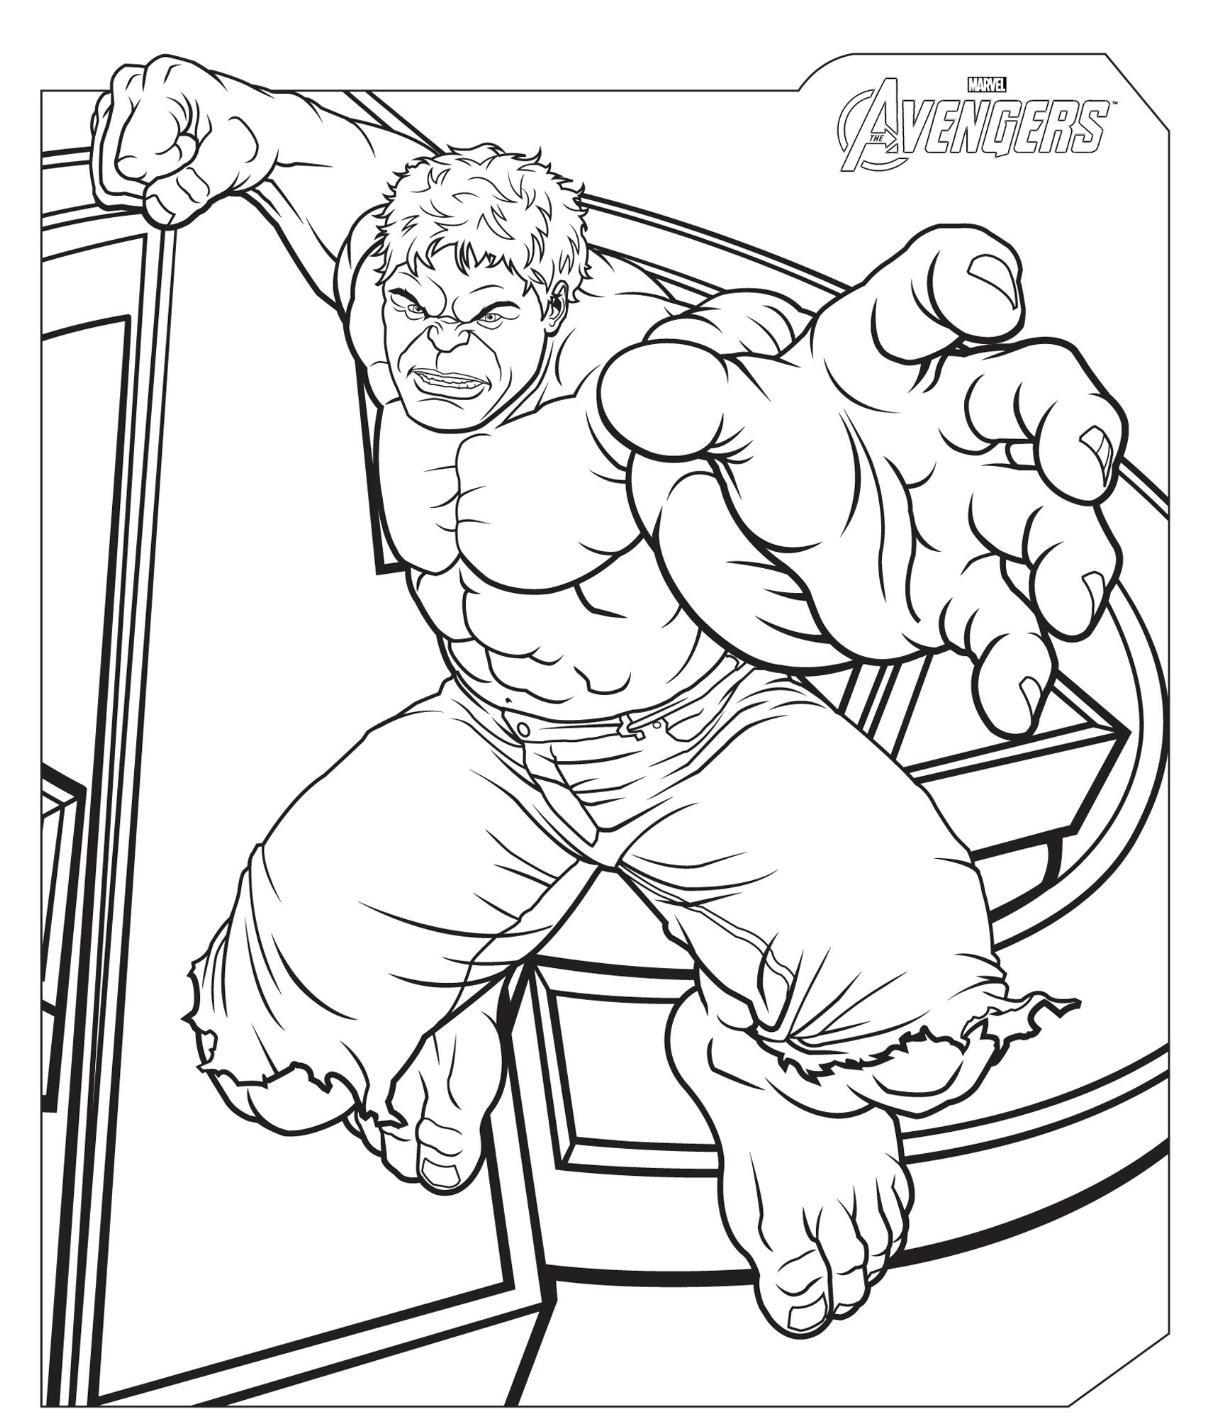 thrilling adventure of superheroes avengers 20 avengers coloring pages free printables